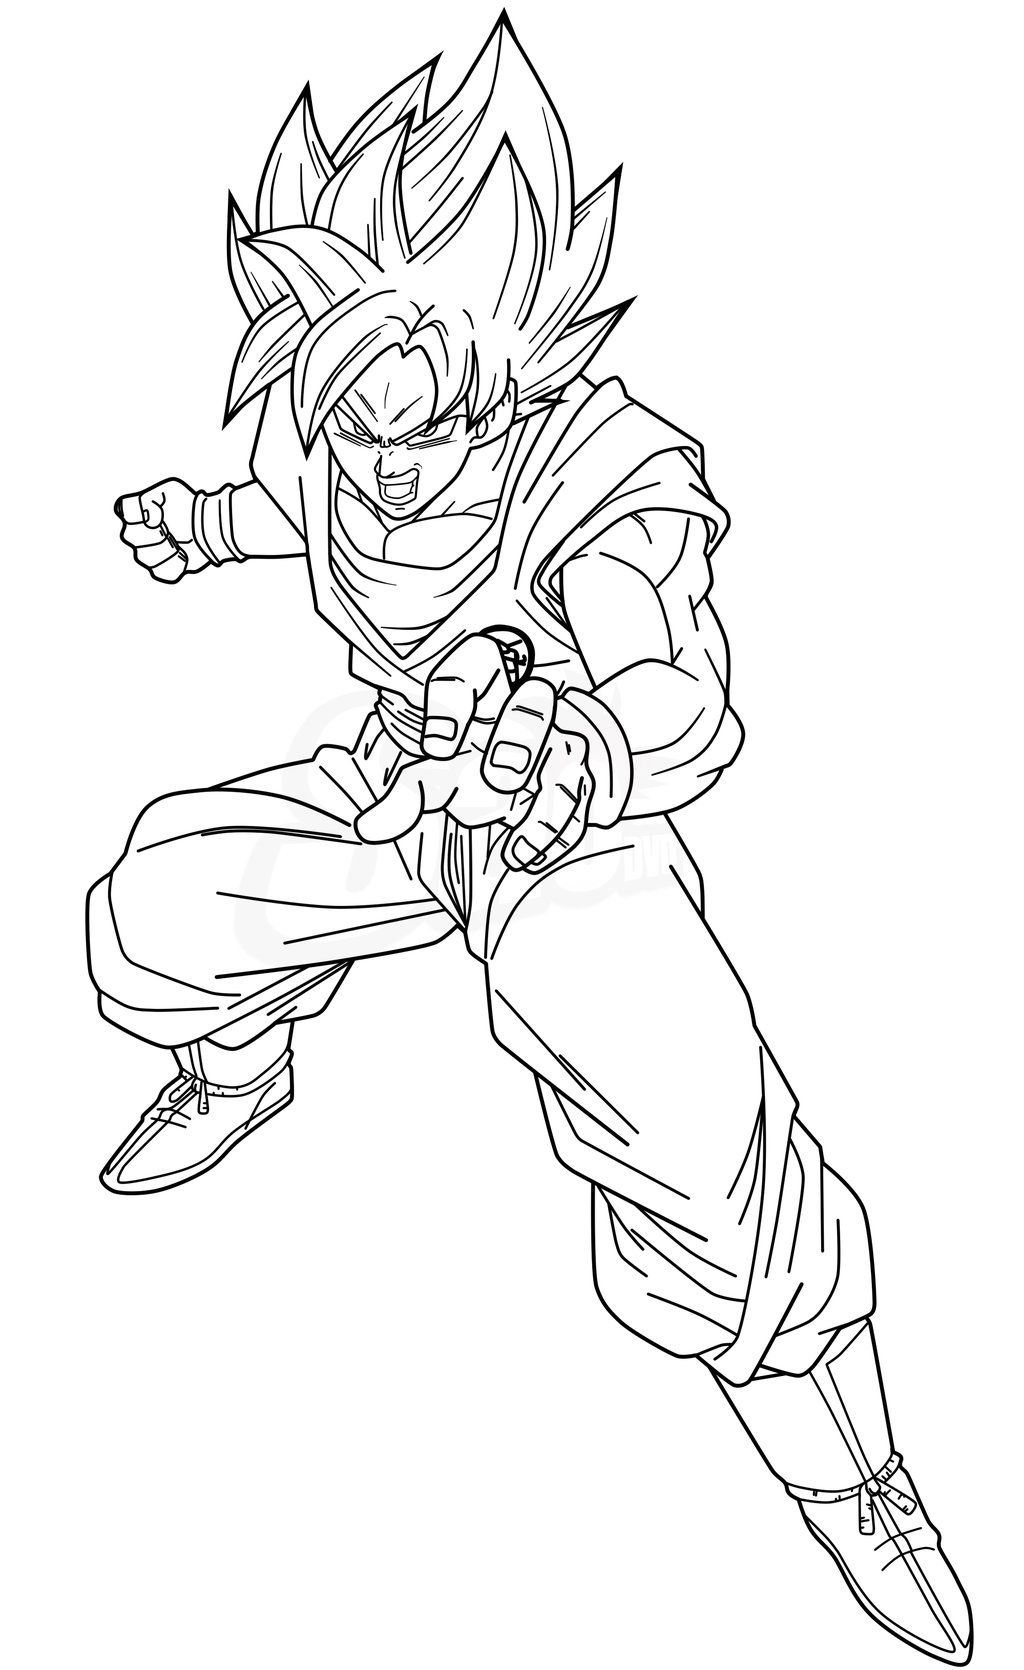 Goku SSJB - Lineart by SaoDVD on DeviantArt | Goku drawing ...